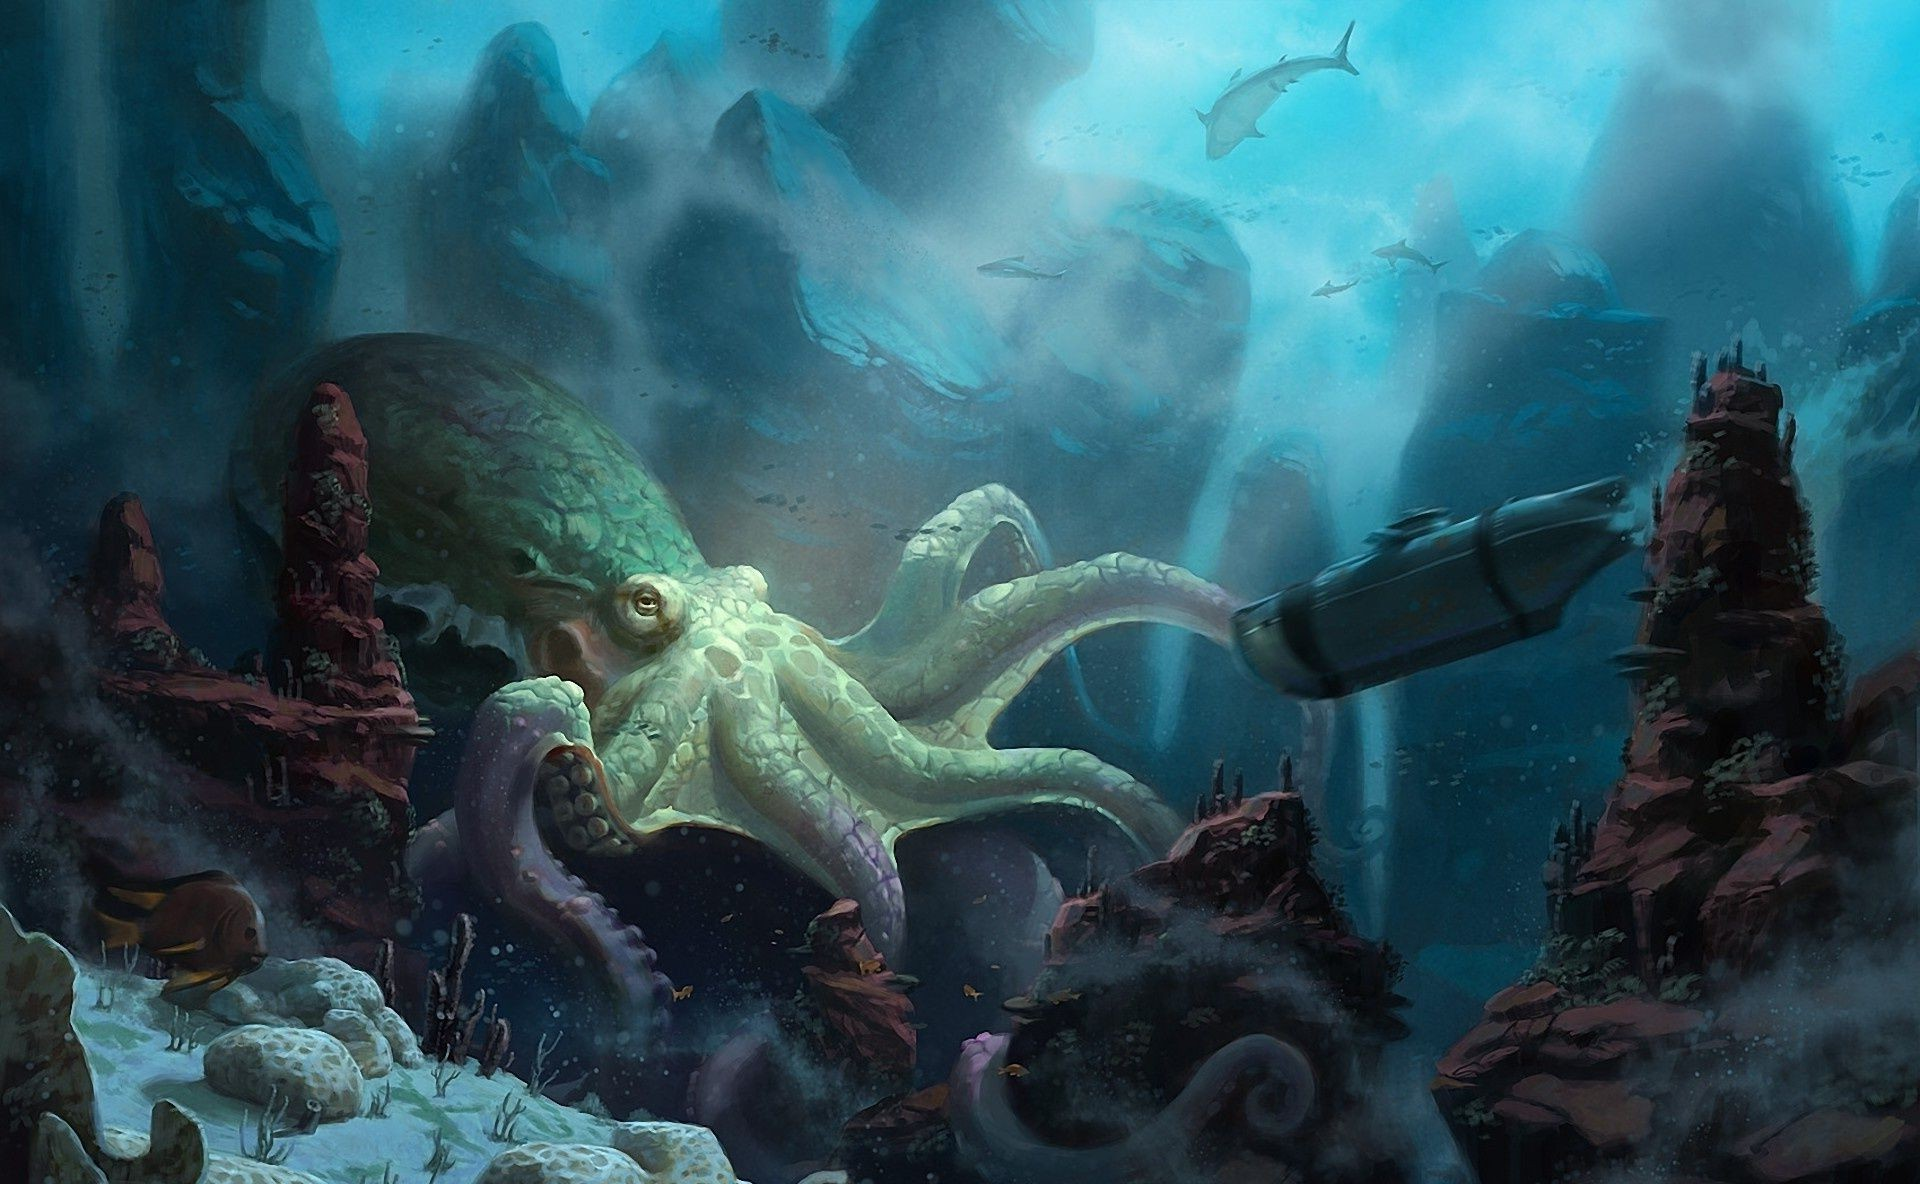 unidcolor ship octopus Art submarine under water